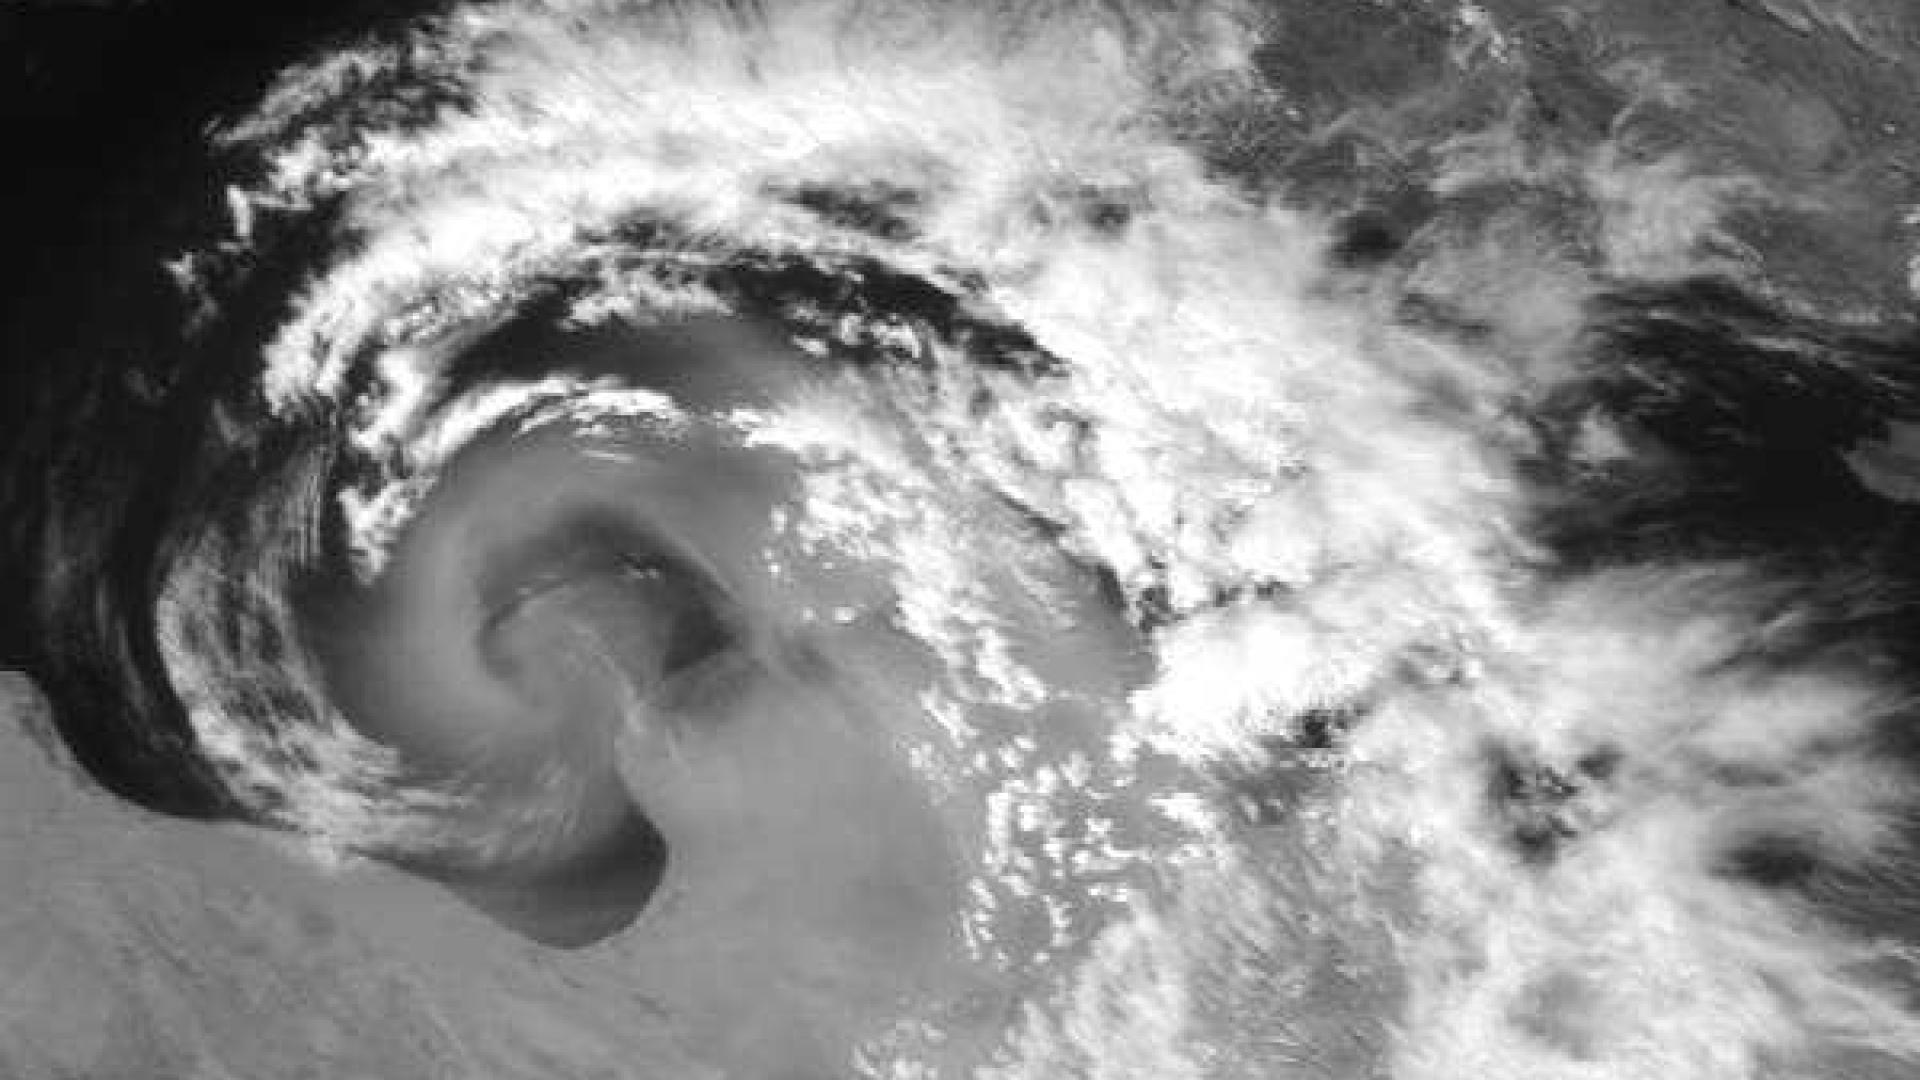 Dust cloud generated by synoptic system over the Mediterranean Sea